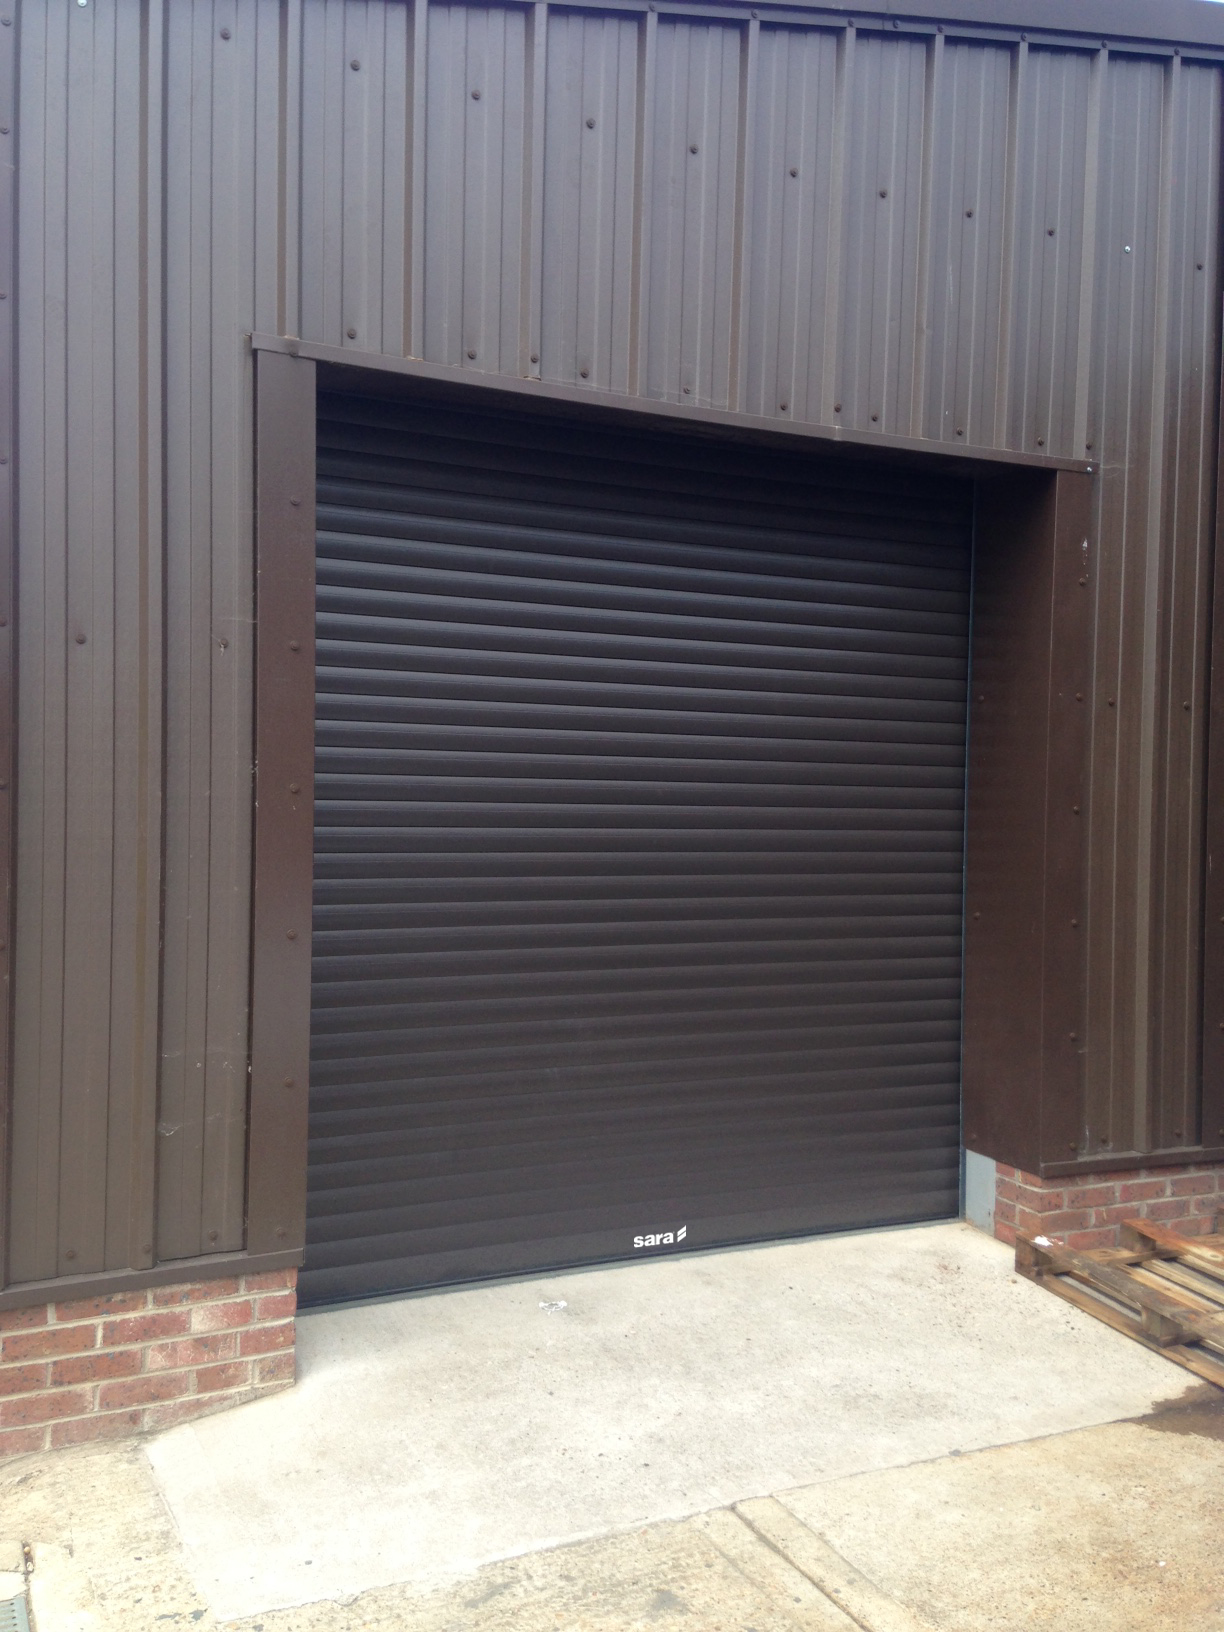 Insulated roller shutter doors can stop noise as well as heat from escaping